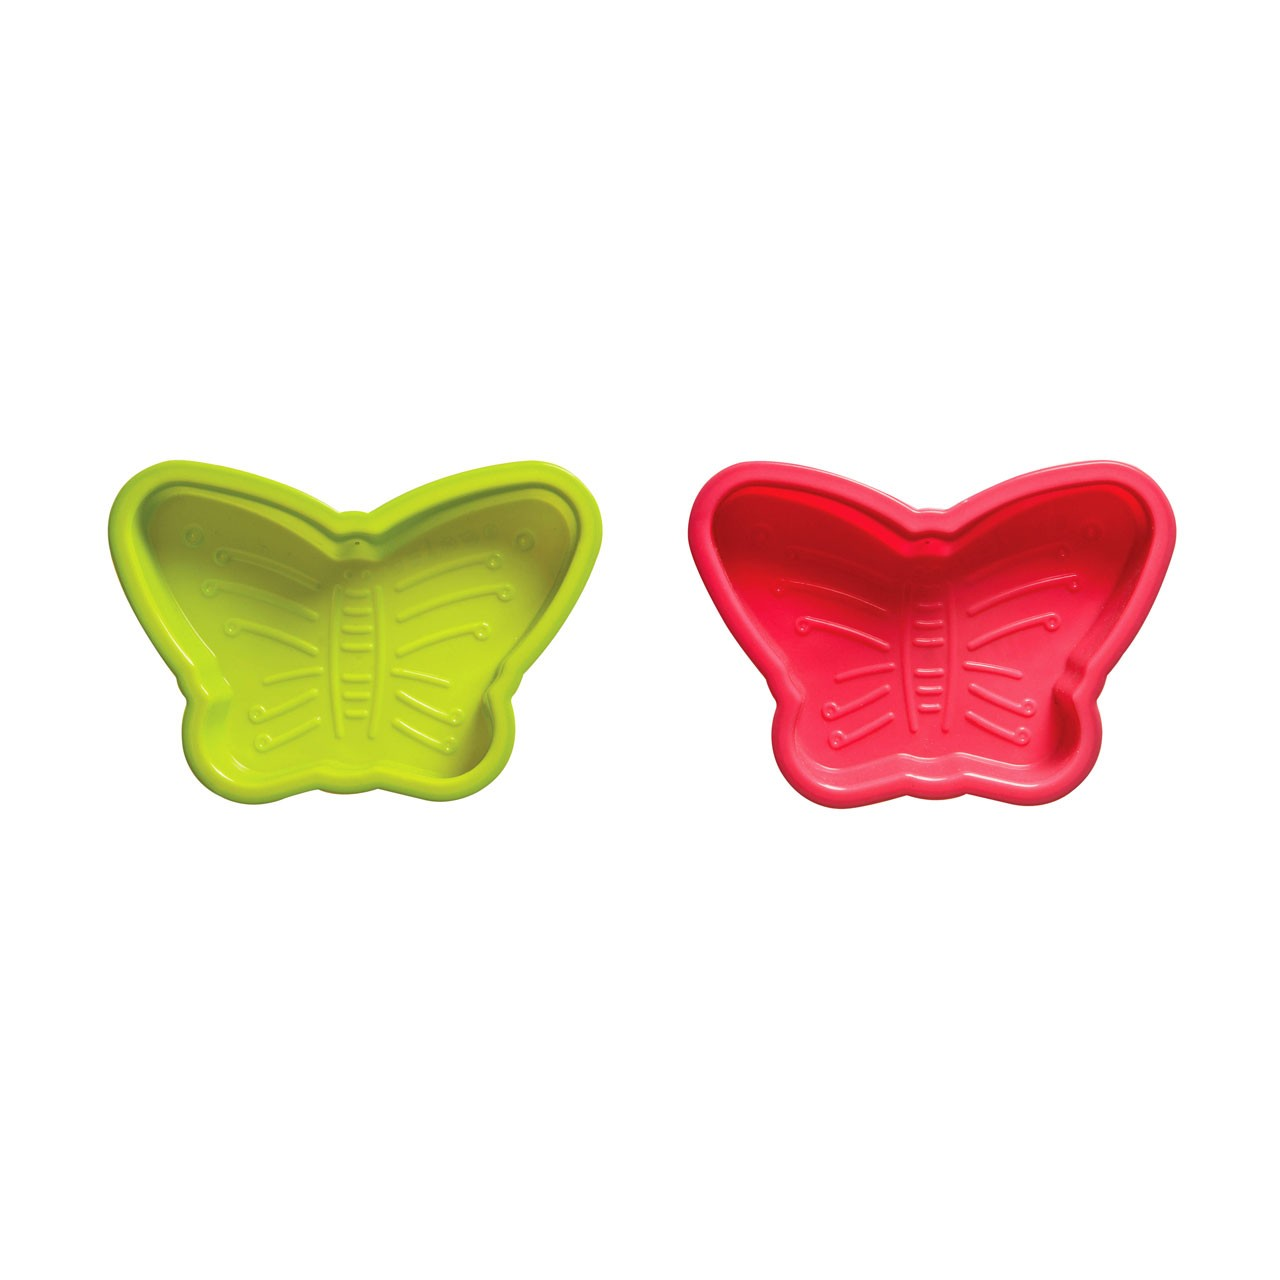 Butterfly Cake Moulds - Set of 2